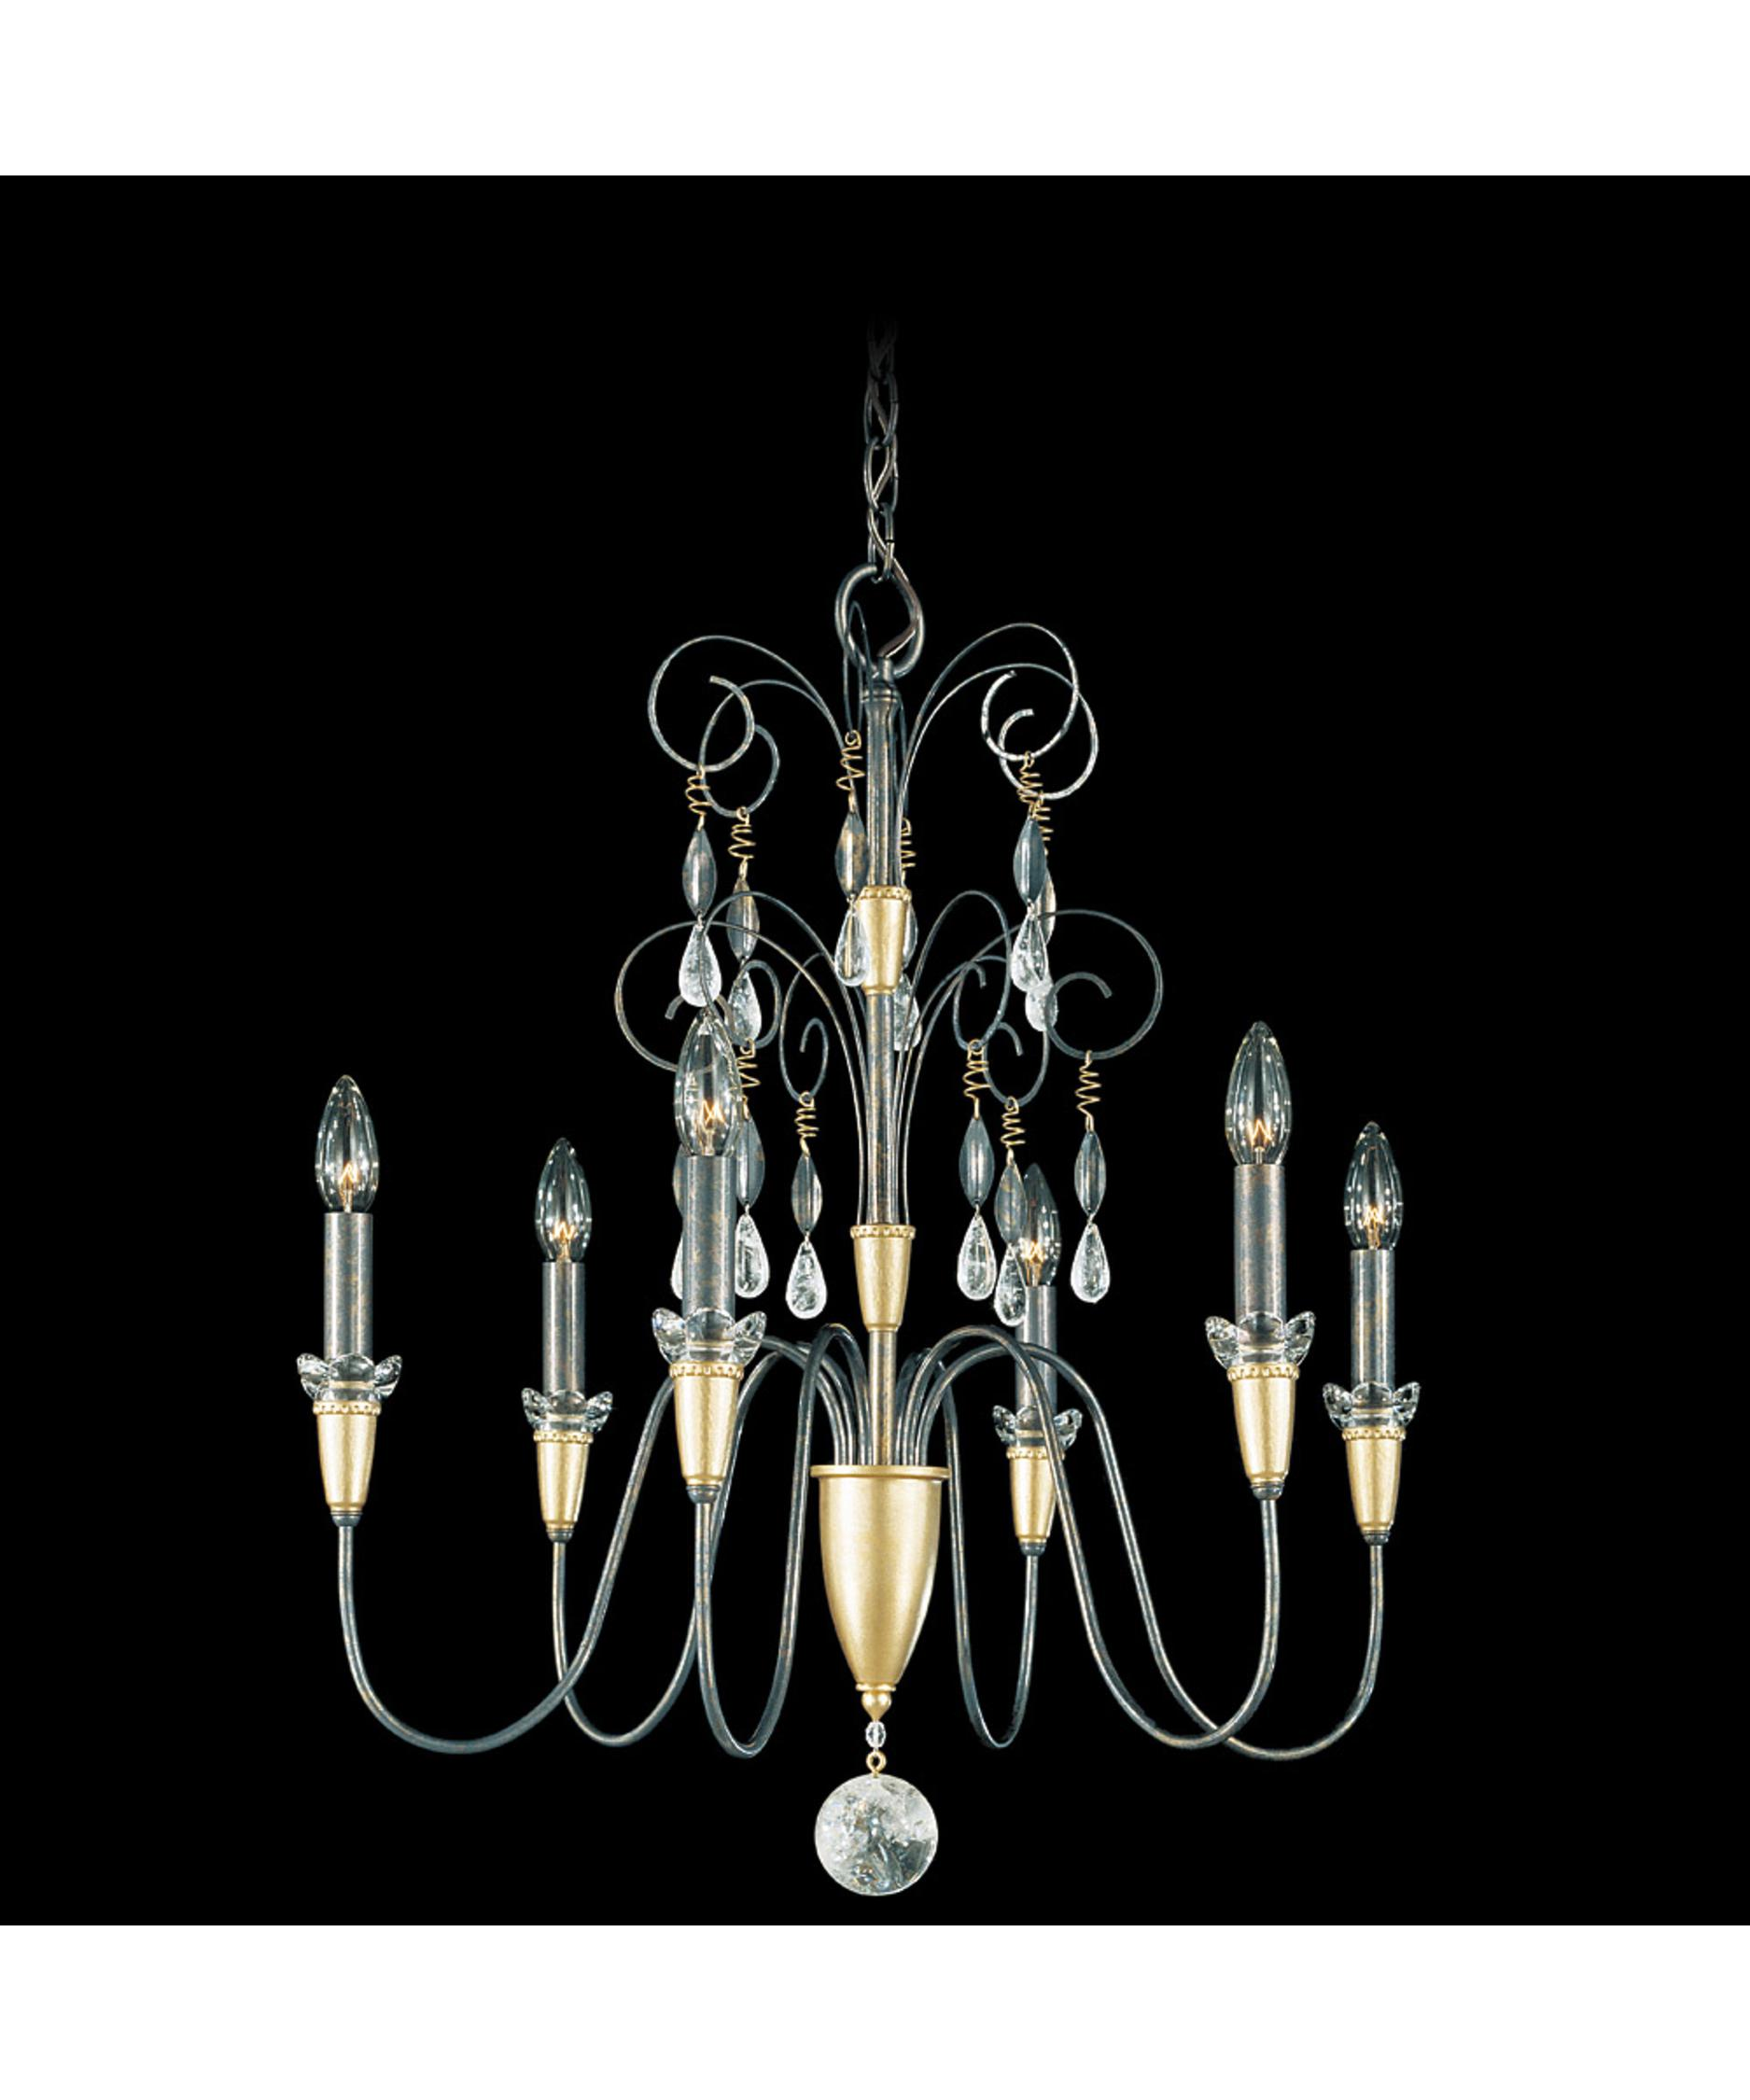 Schonbek Chandelier Replacement Parts: Document Moved